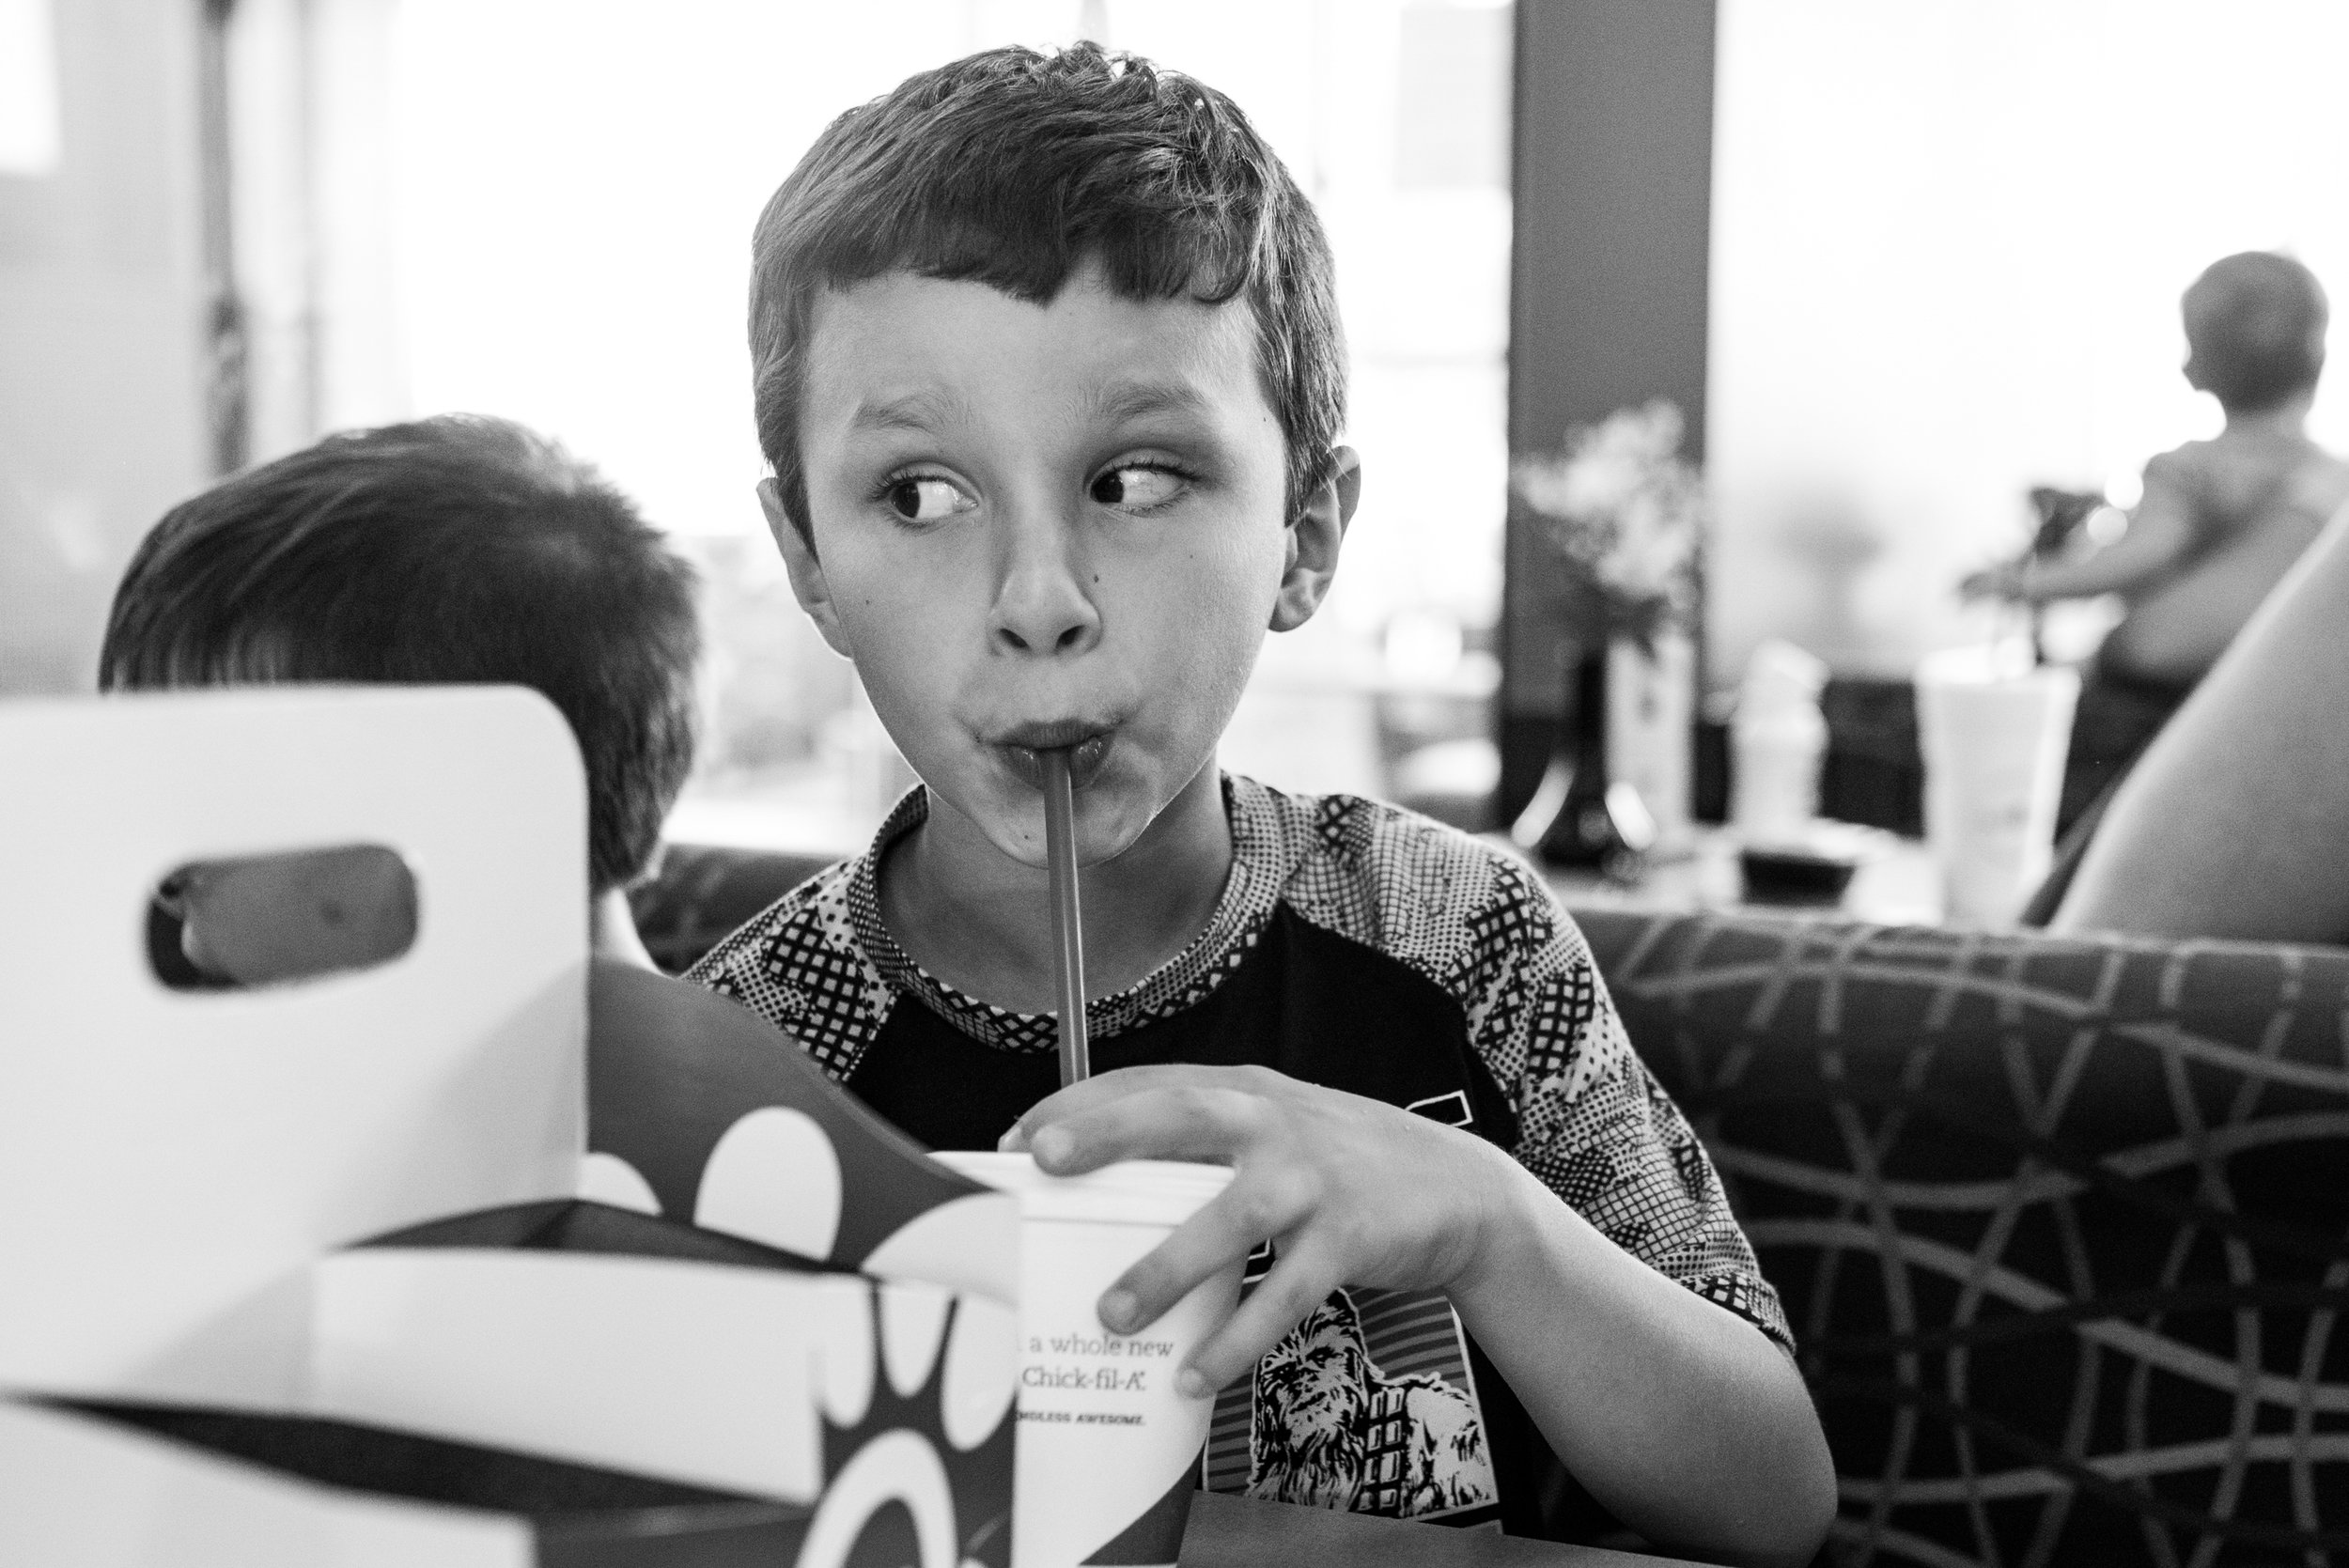 Boy drinking out of a straw sitting at a table at Chick-Fil-A in Brookfield, WI